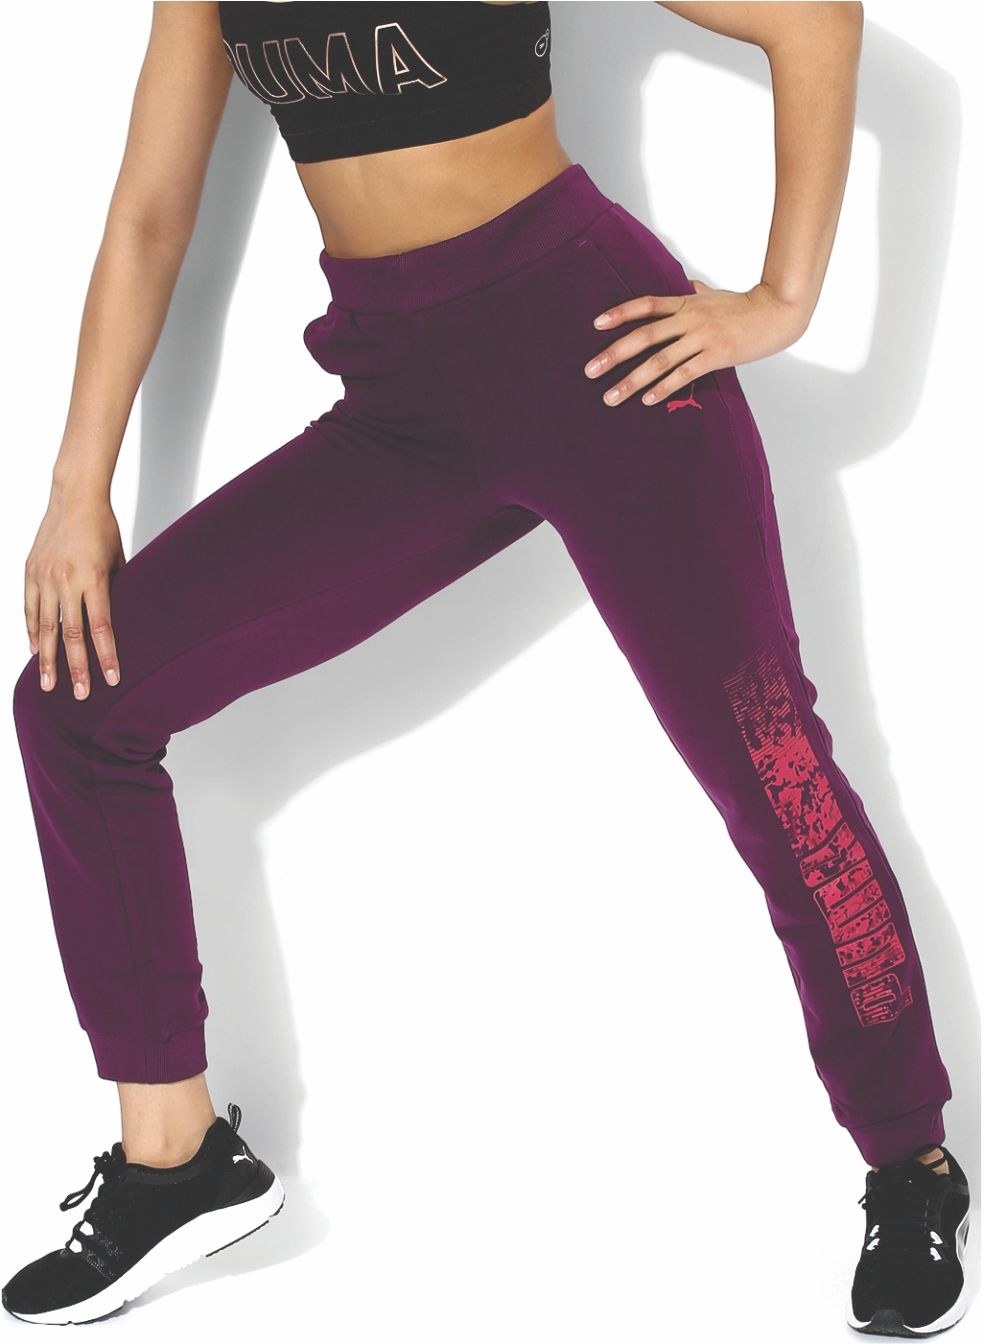 New Puma  active wear styles added to jabong